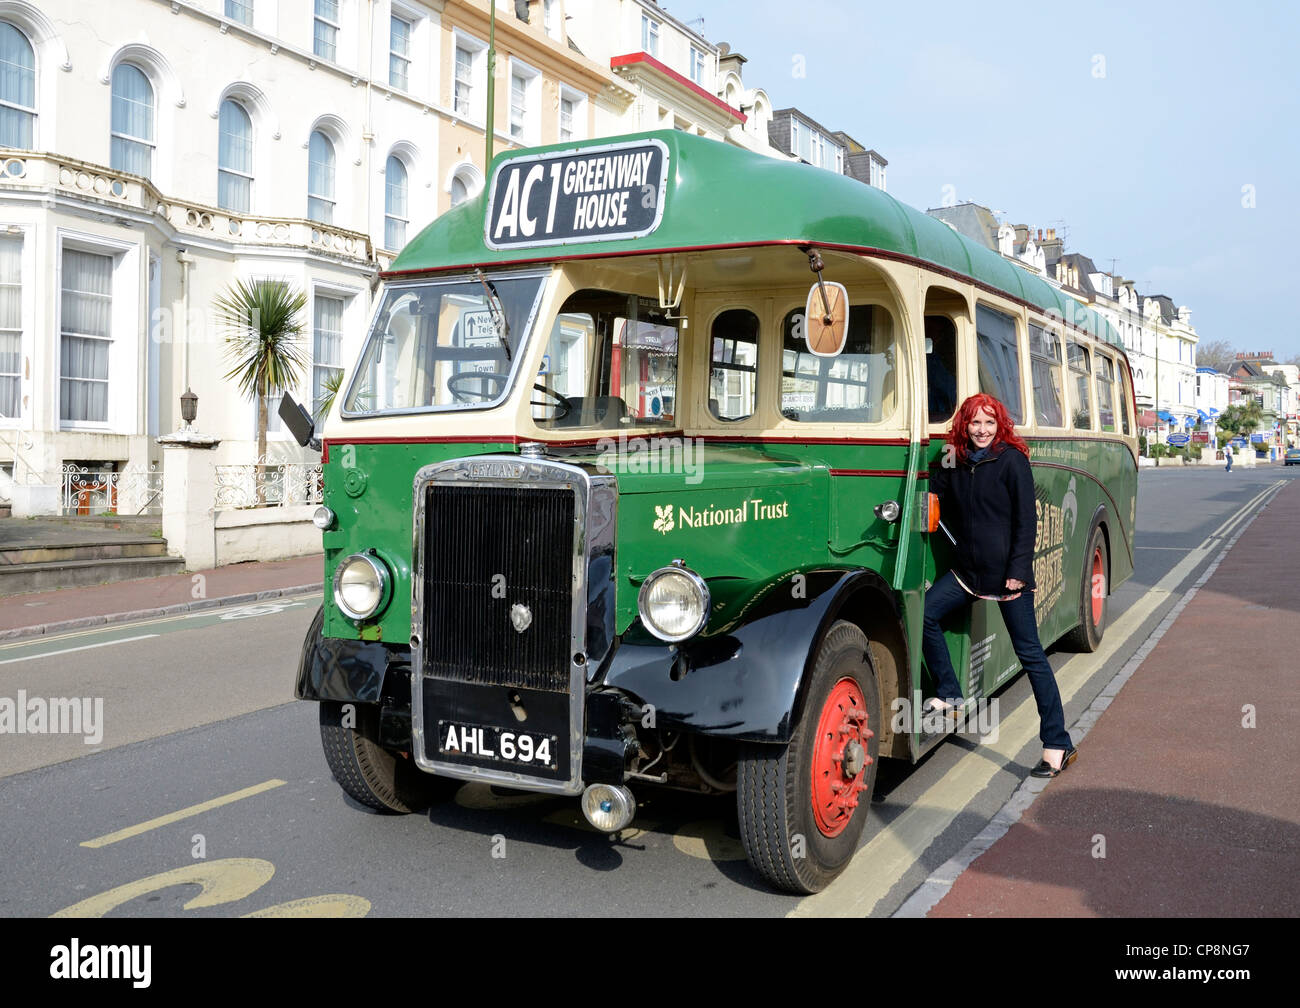 a tourist posing for a photograph before boarding the Agatha Christie tour bus at Torquay in Devon, UK - Stock Image